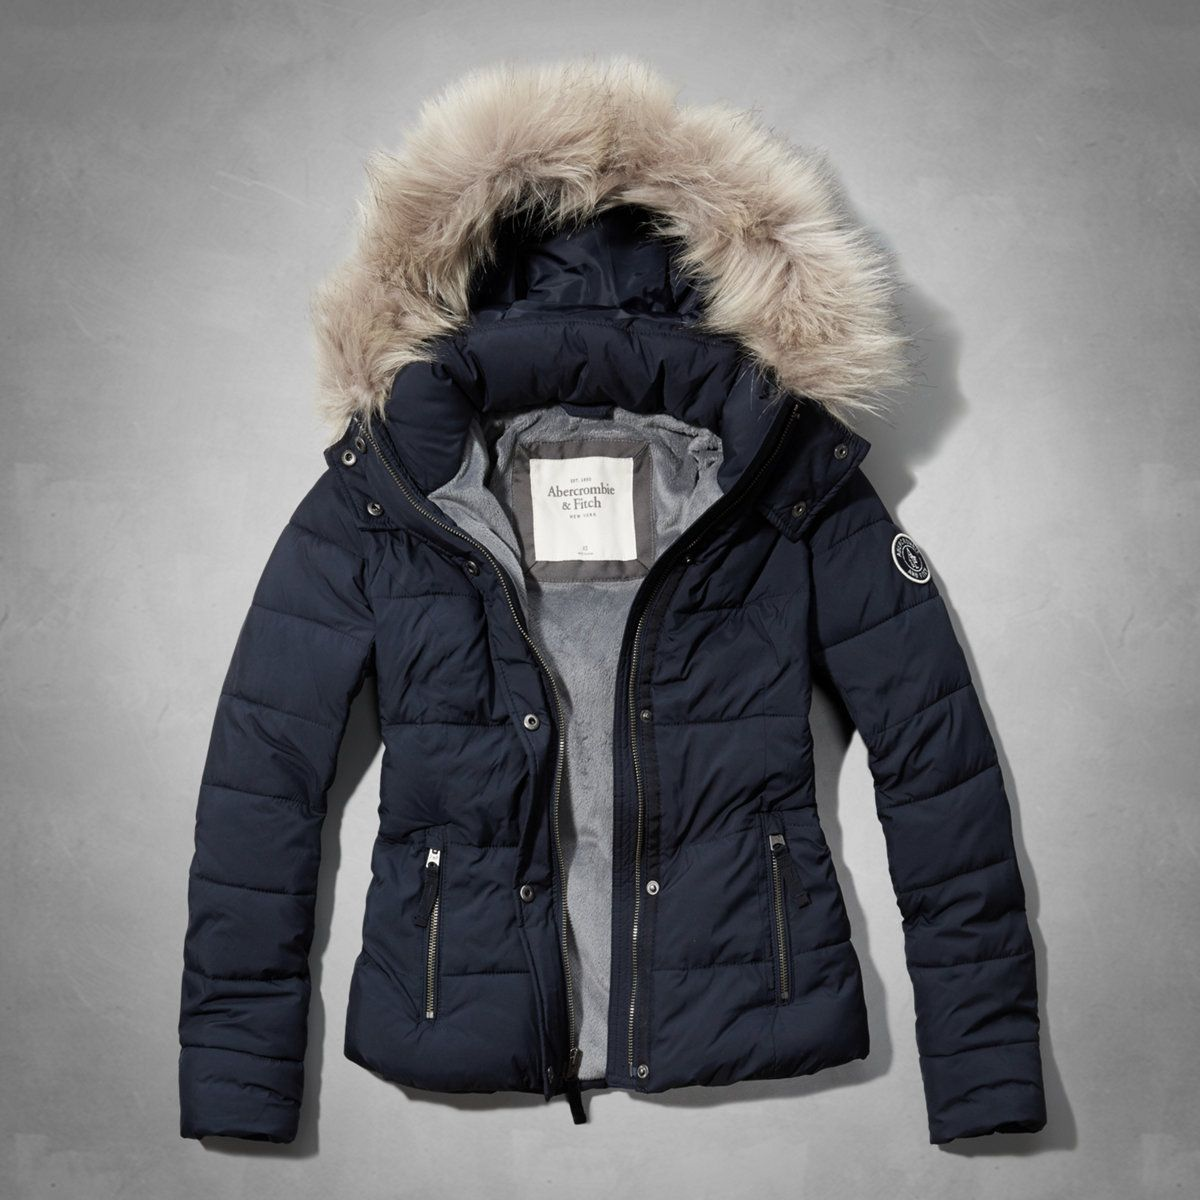 Womens A&F Classic Puffer Jacket | Womens Sale | Abercrombie